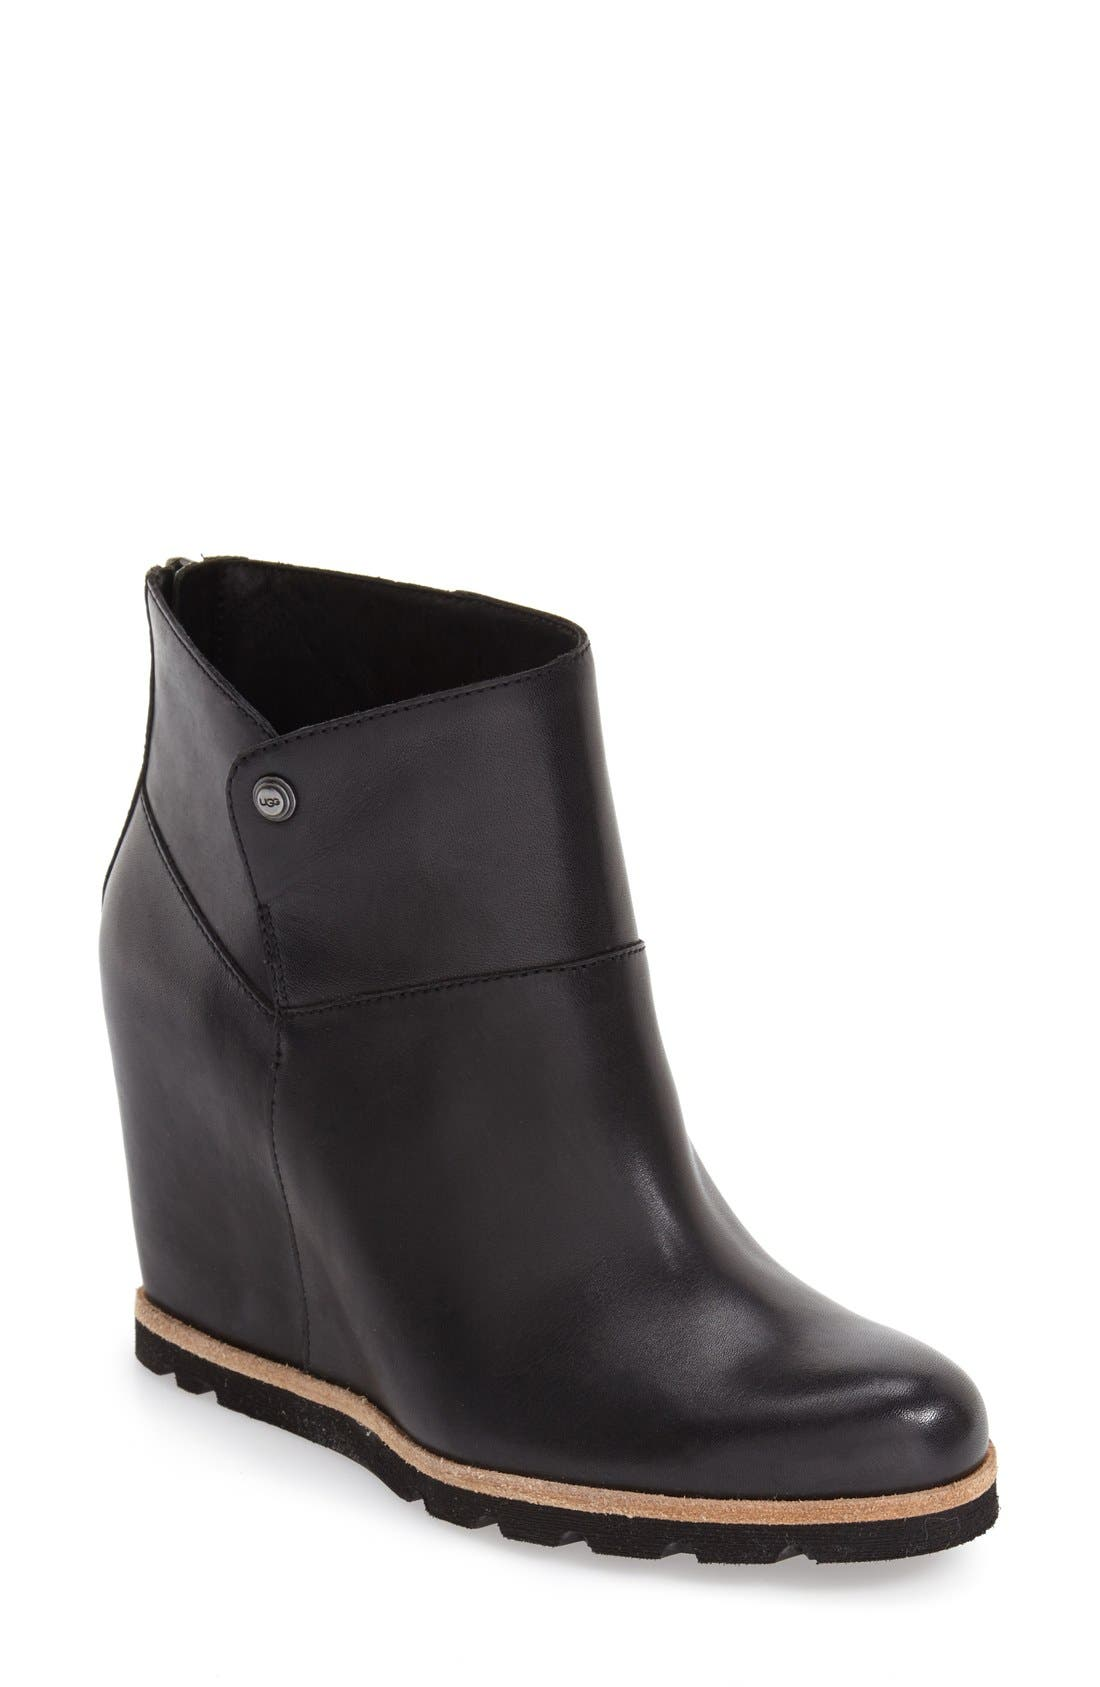 Alternate Image 1 Selected - UGG® 'Amal' Wedge Boot (Women)